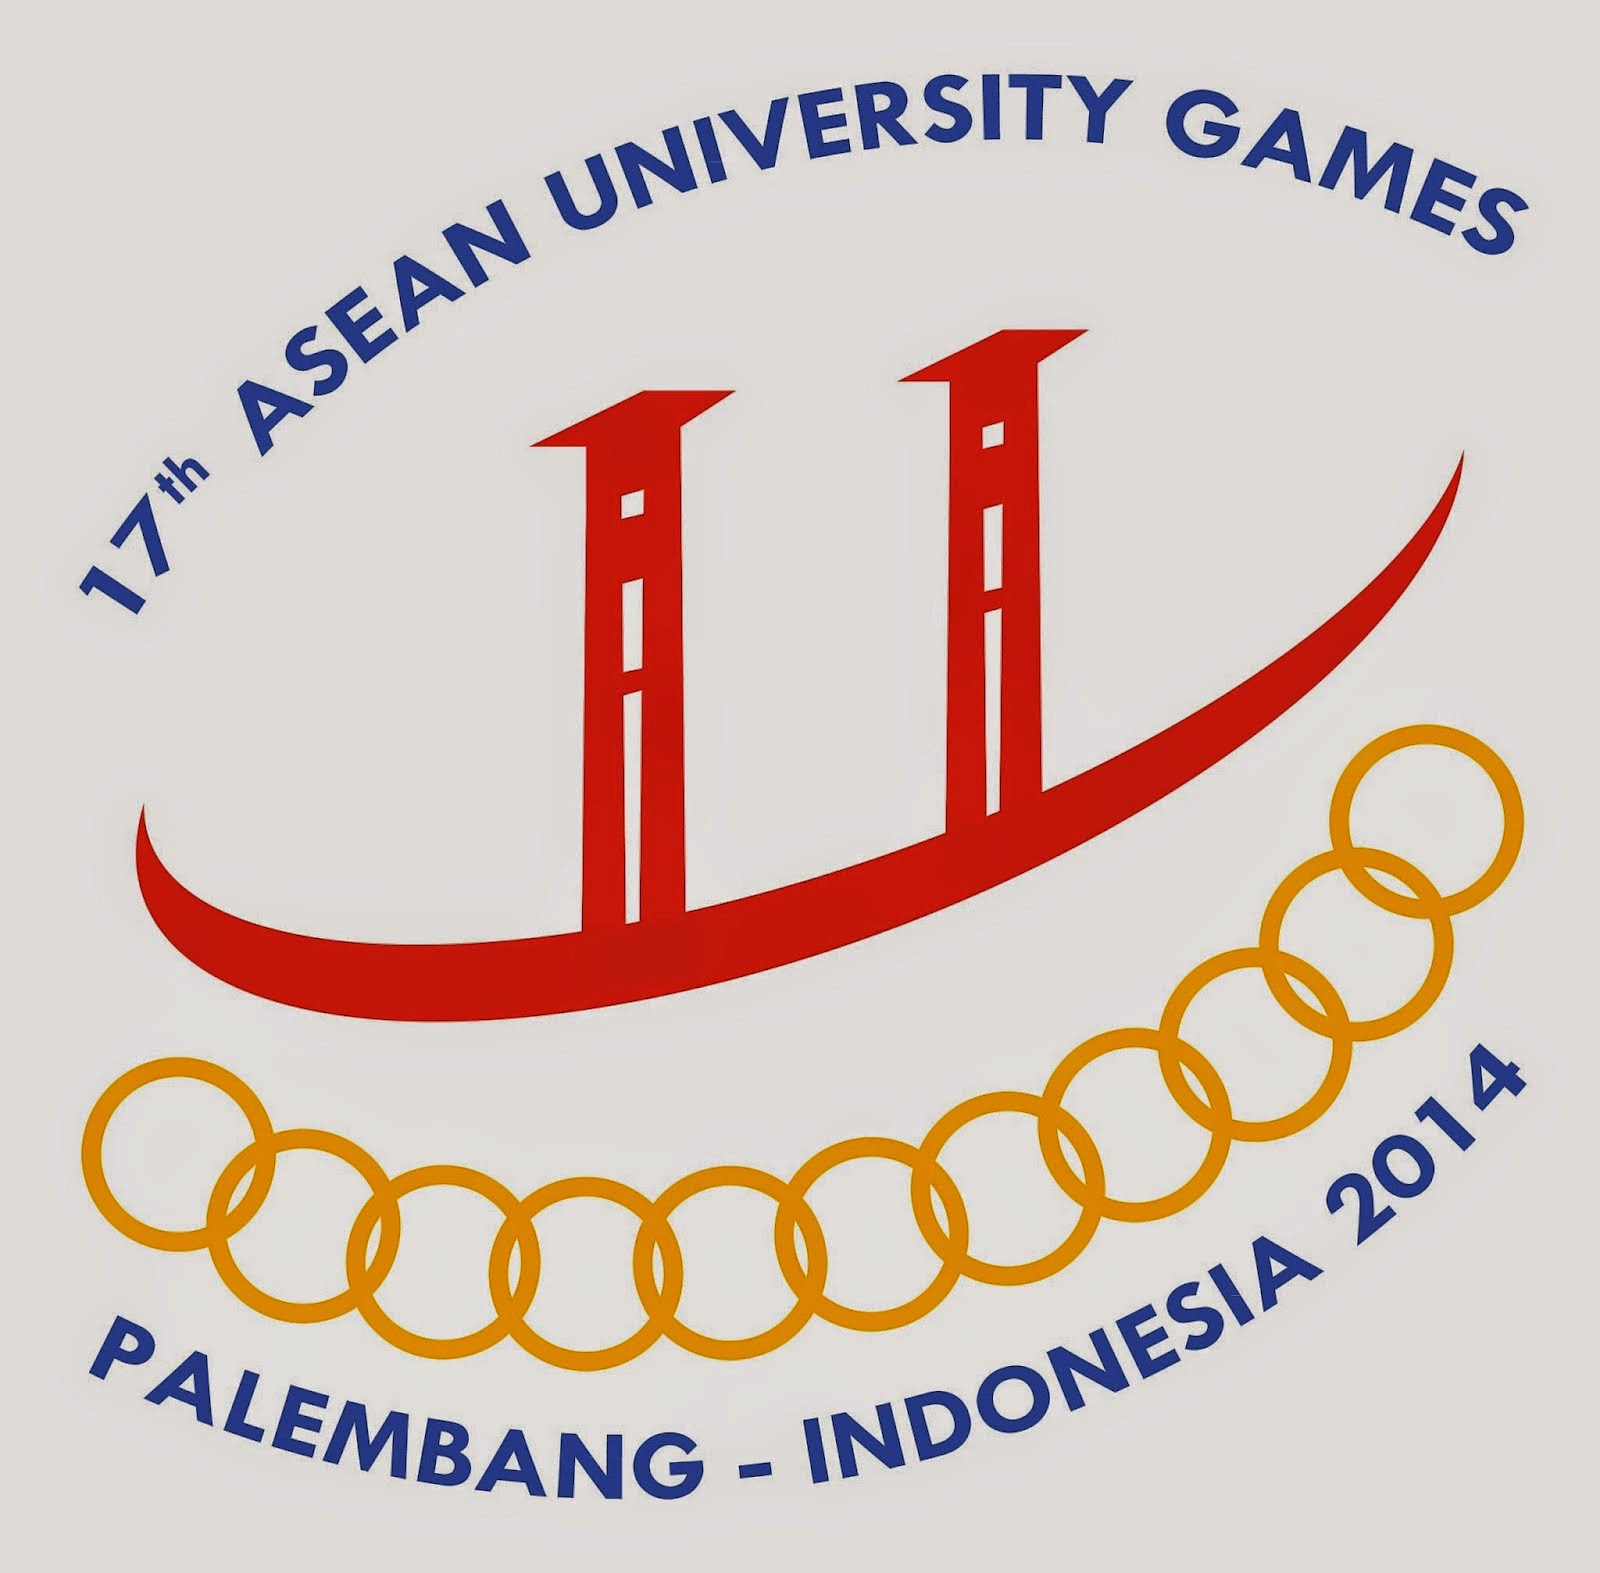 17th ASEAN University Games - Palembang 2014